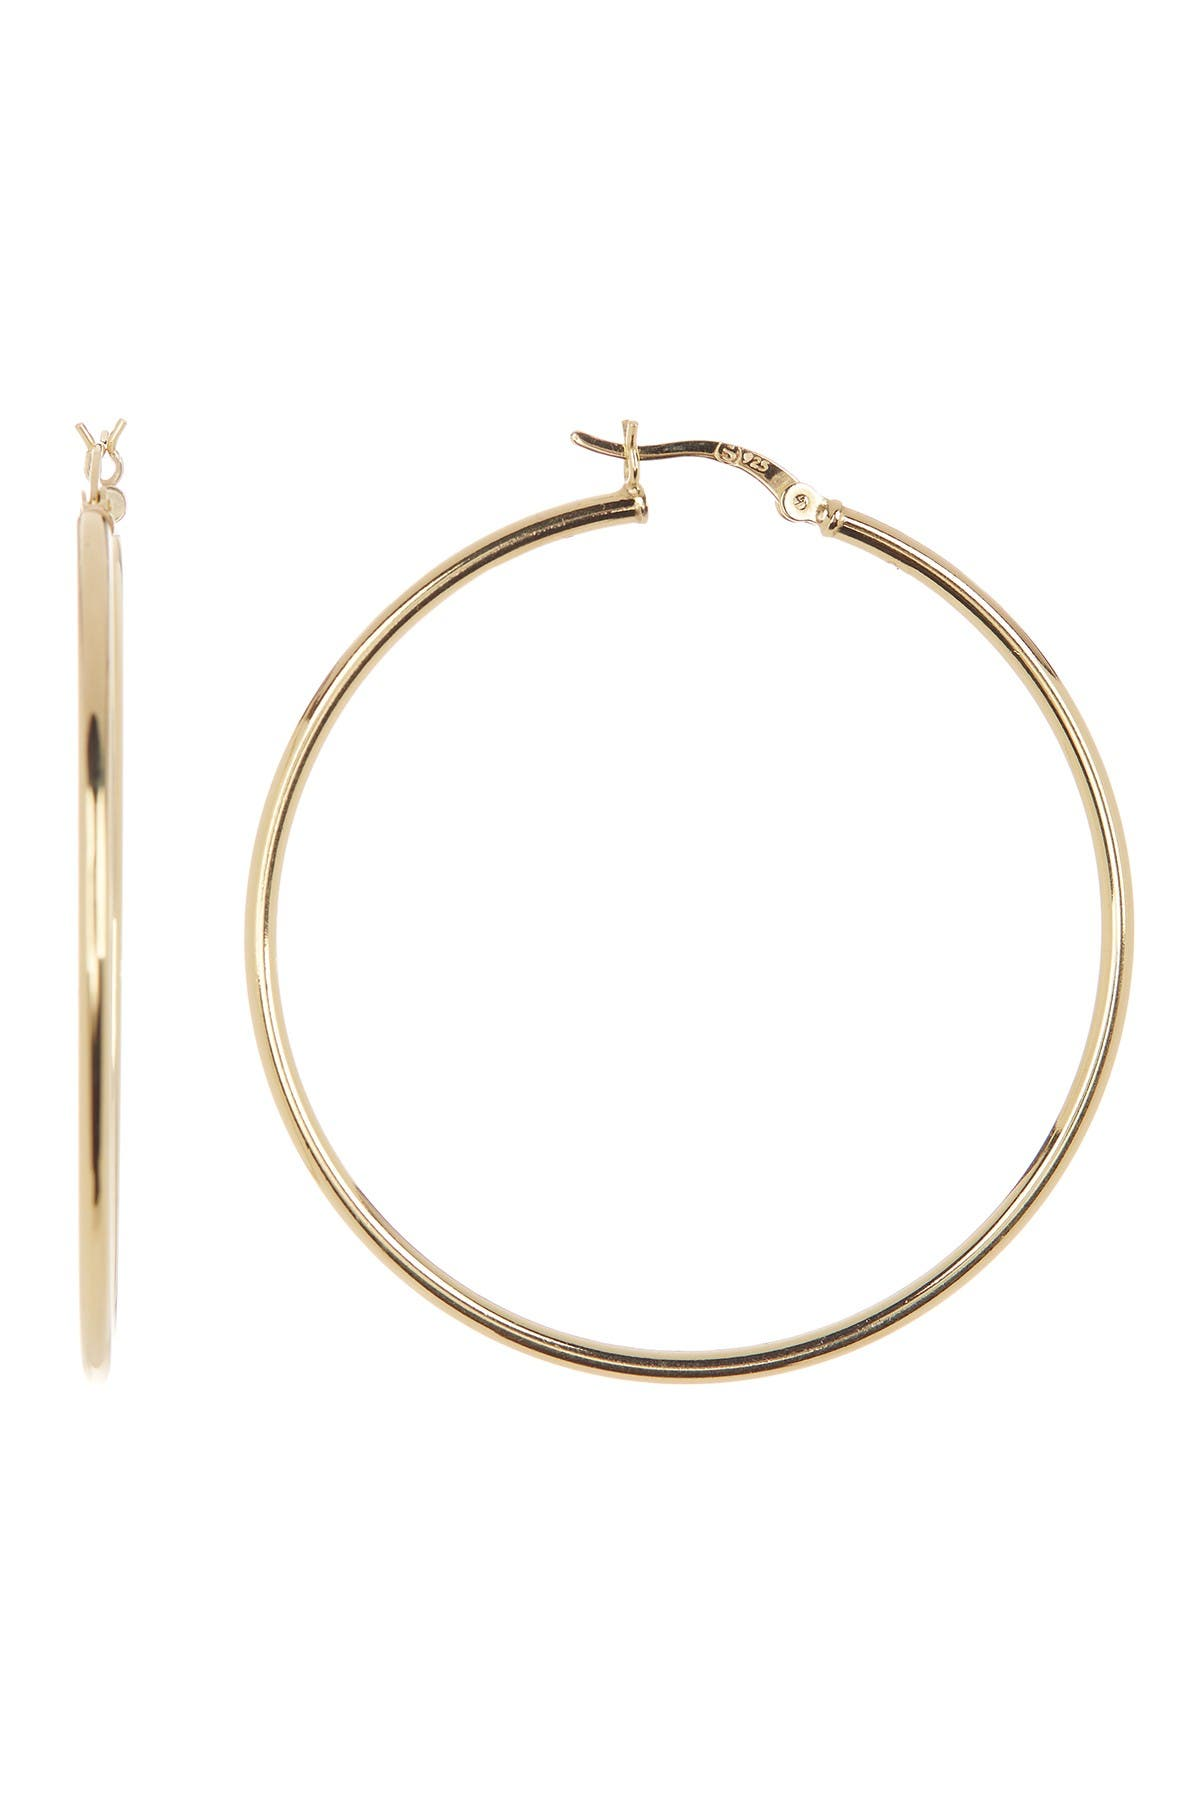 Image of Sterling Forever 14K Gold Vermeil 50mm Hoop Earrings